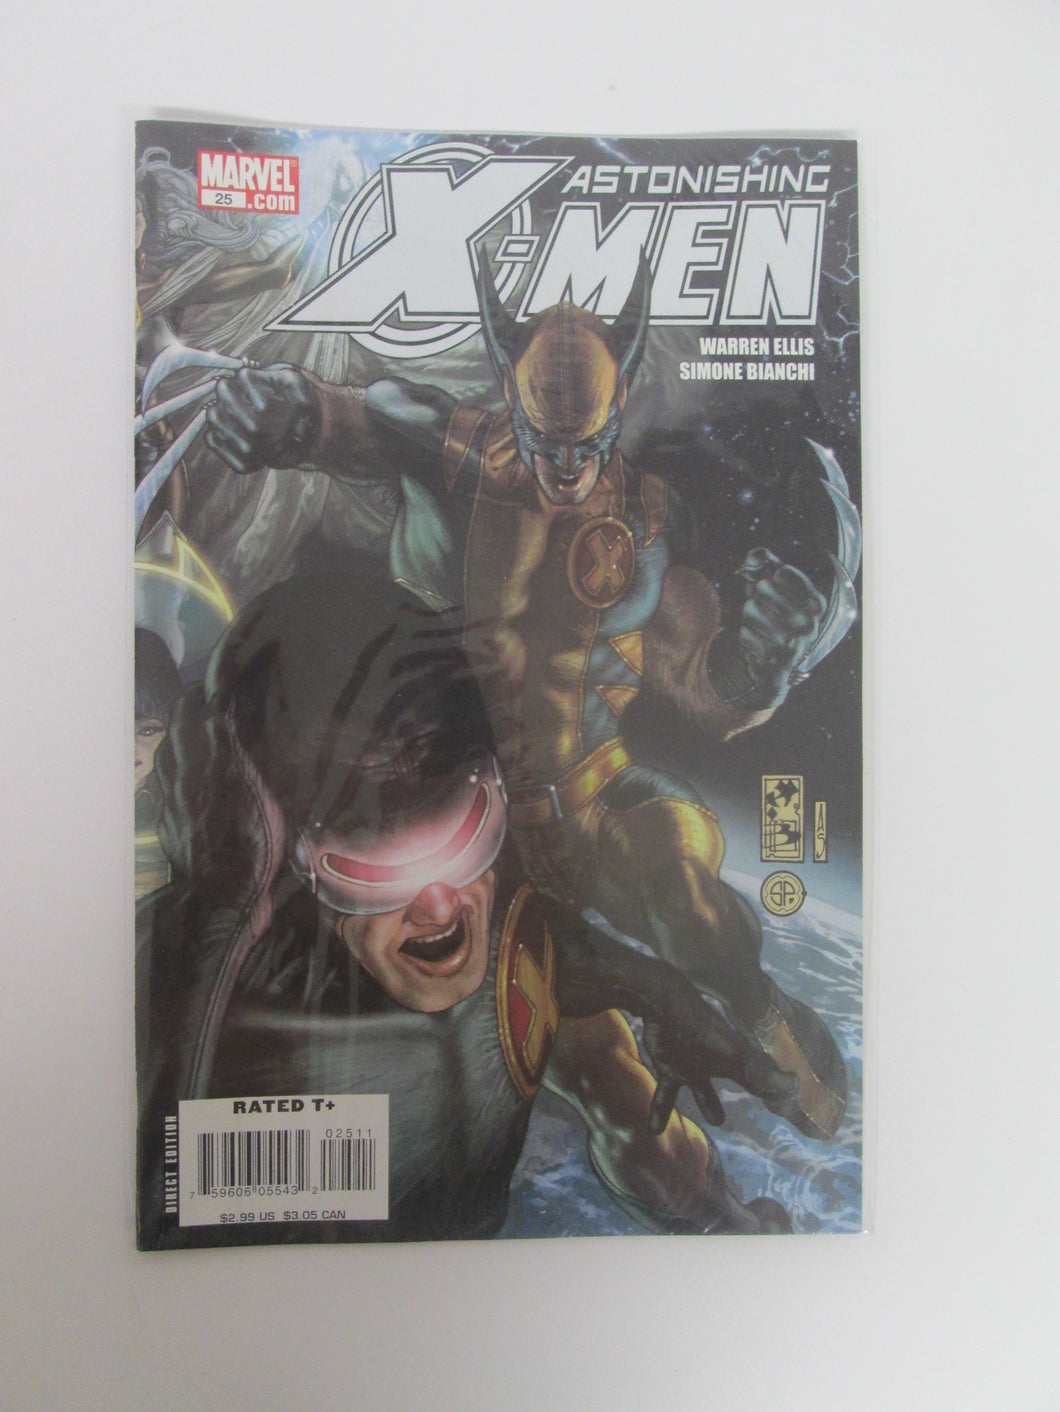 Astonishing X-Men #25 (Marvel)